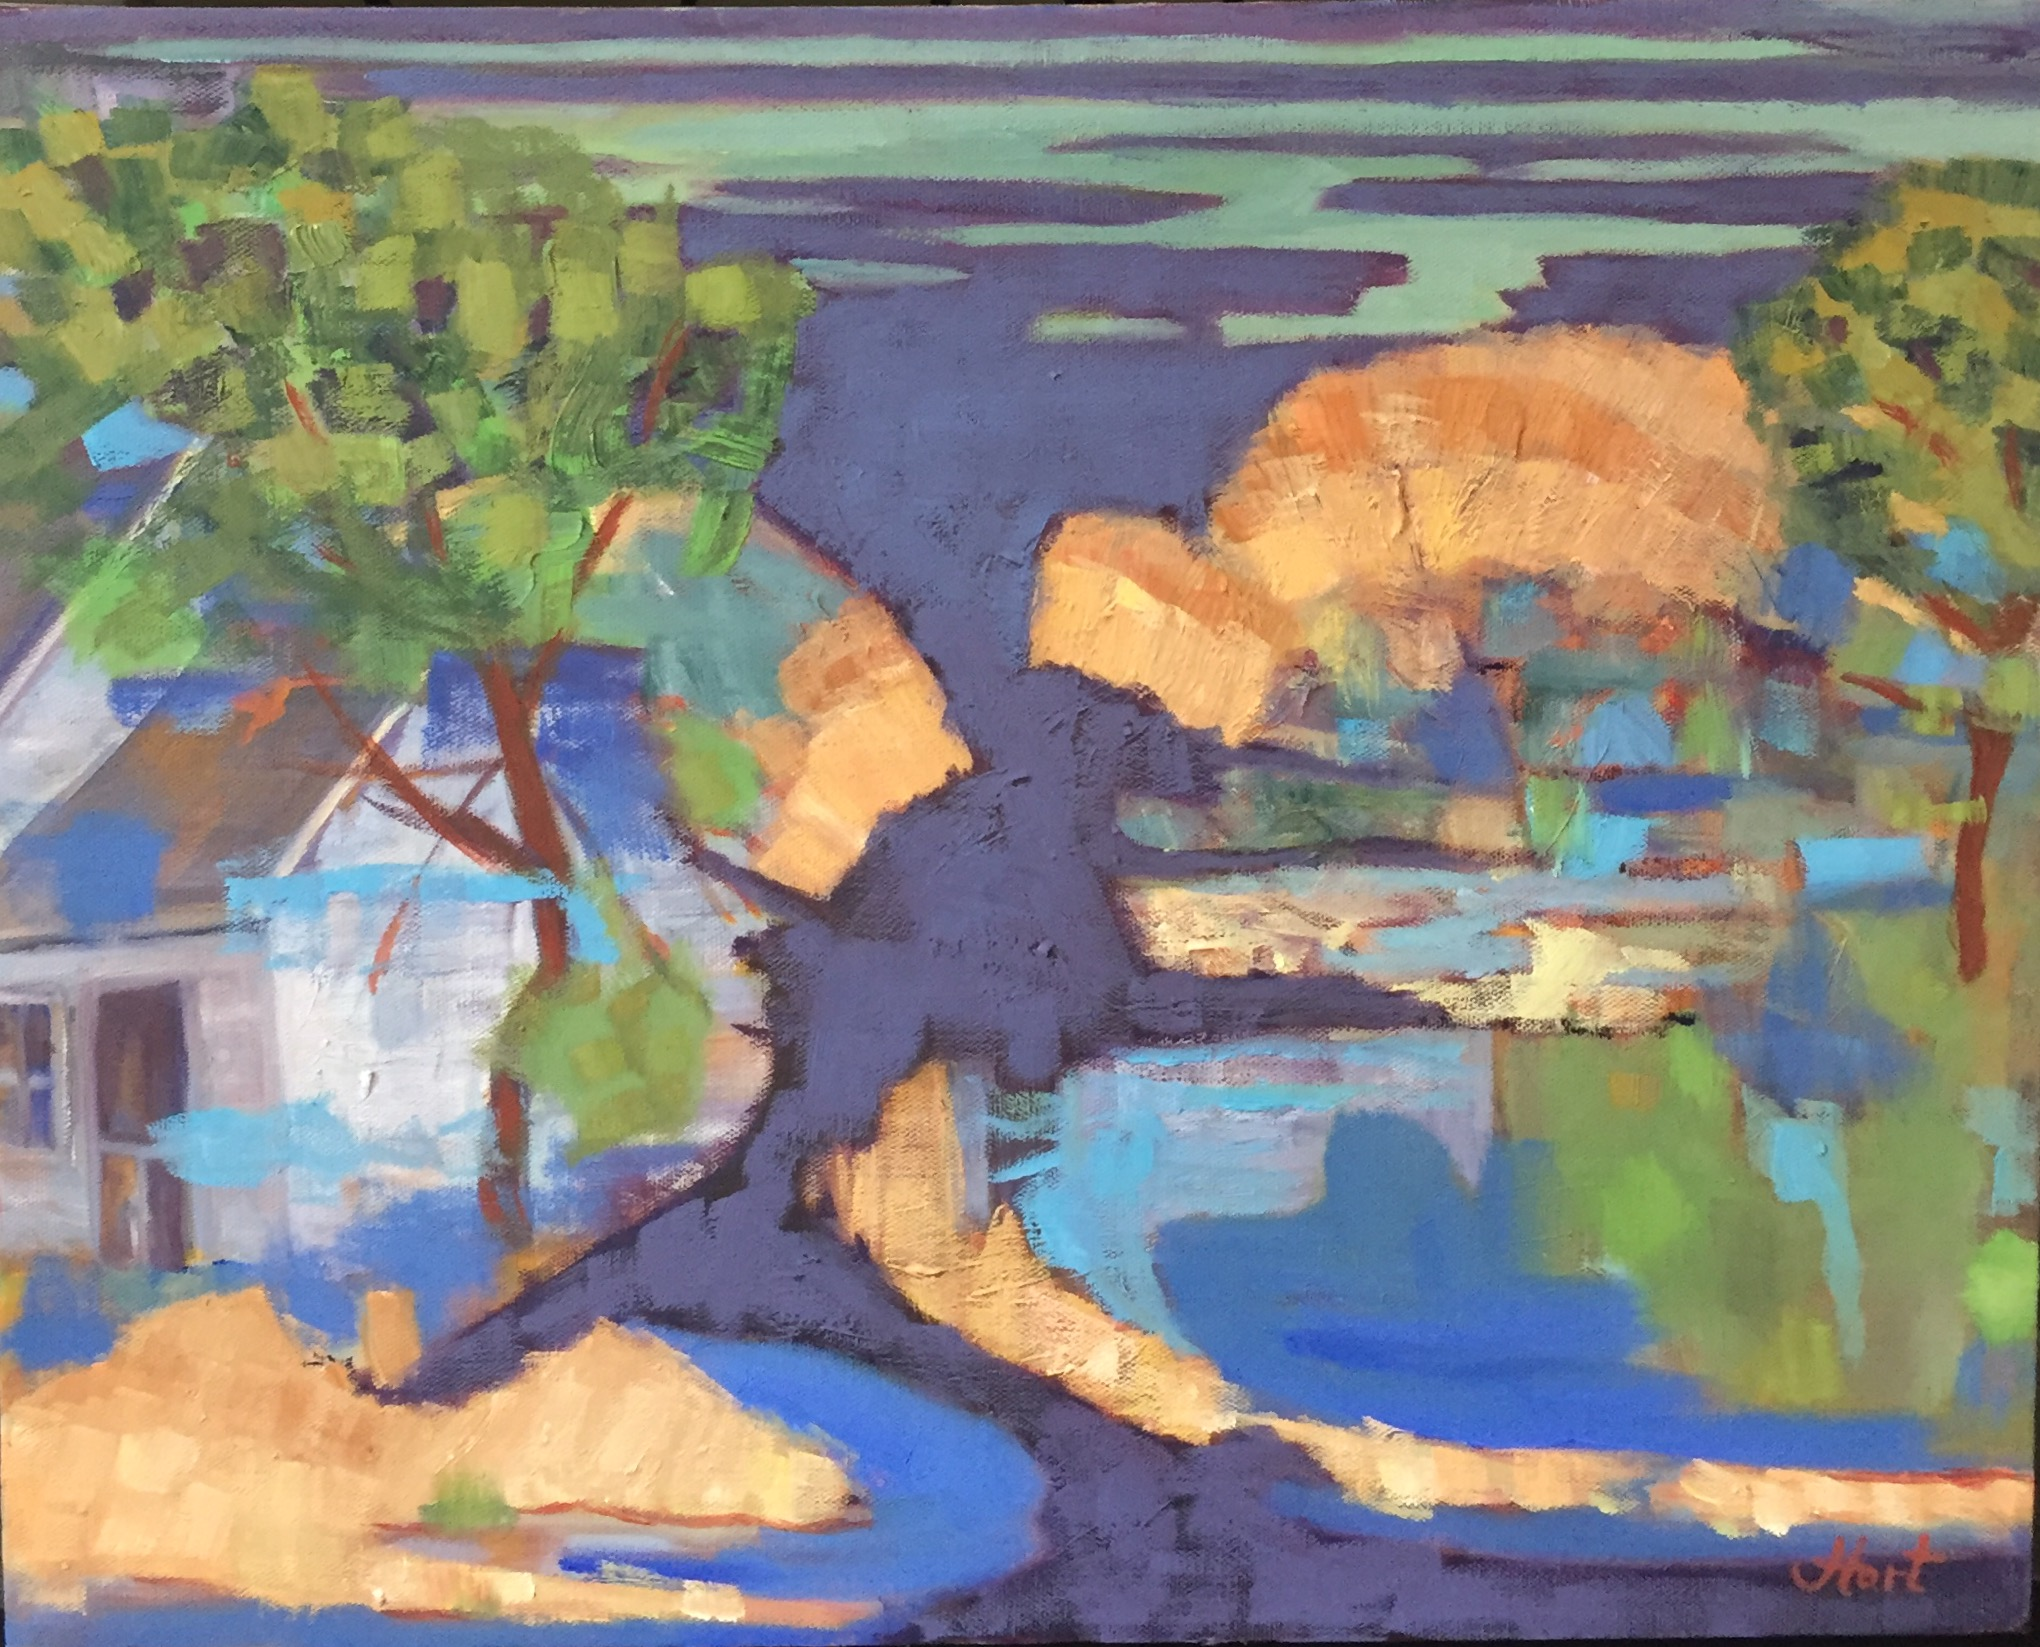 Abstract inspired by the landscape of the Eastern Shore